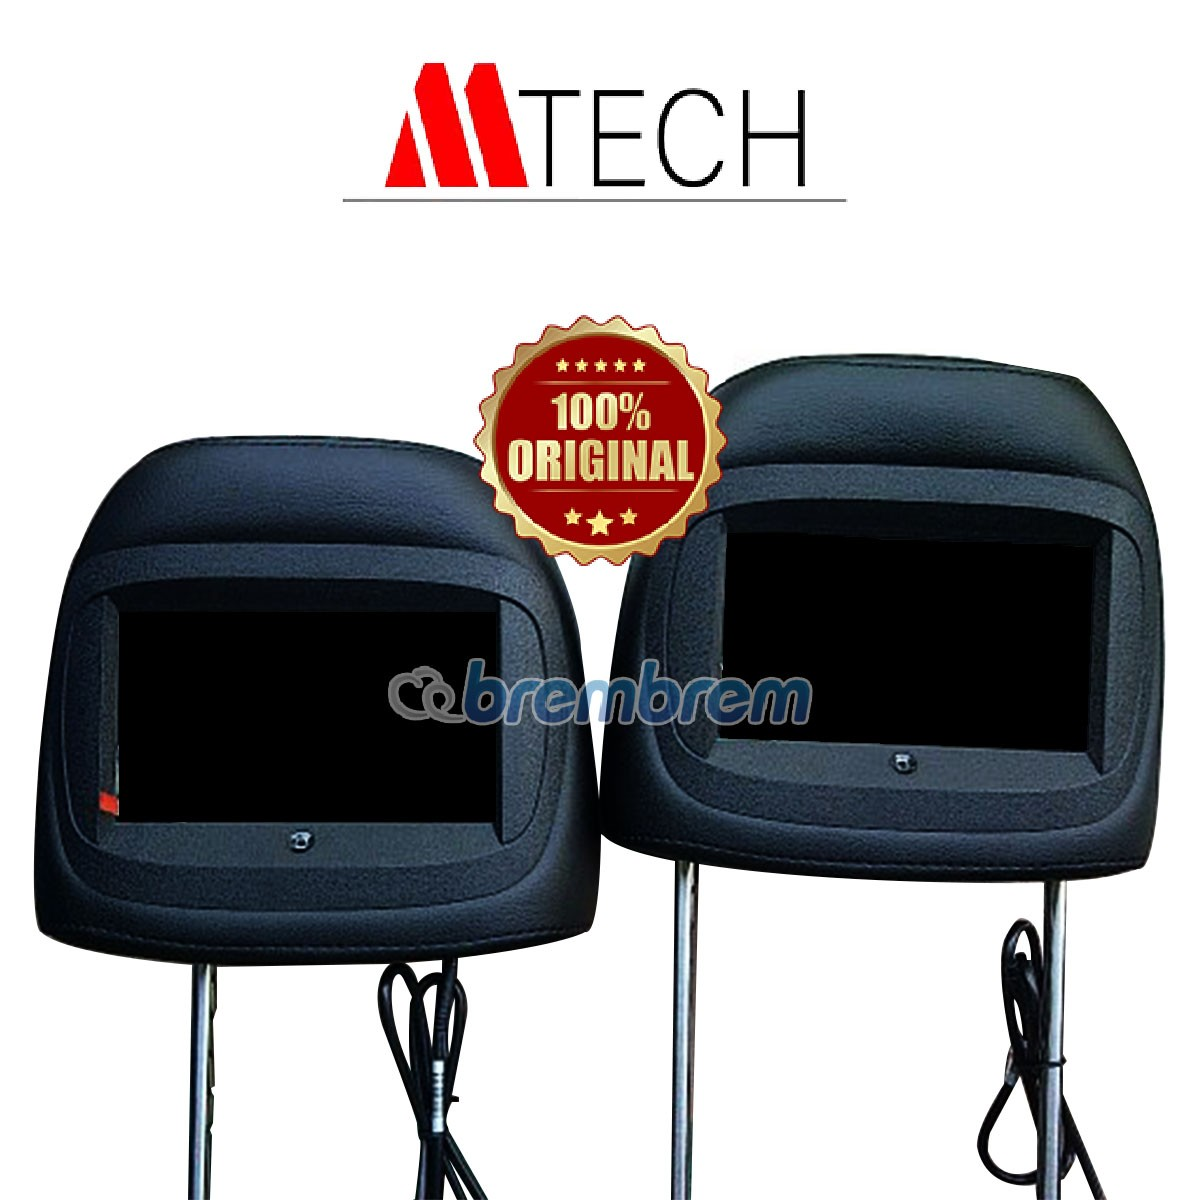 MTECH MH 7022 BLACK - HEADREST MONITOR